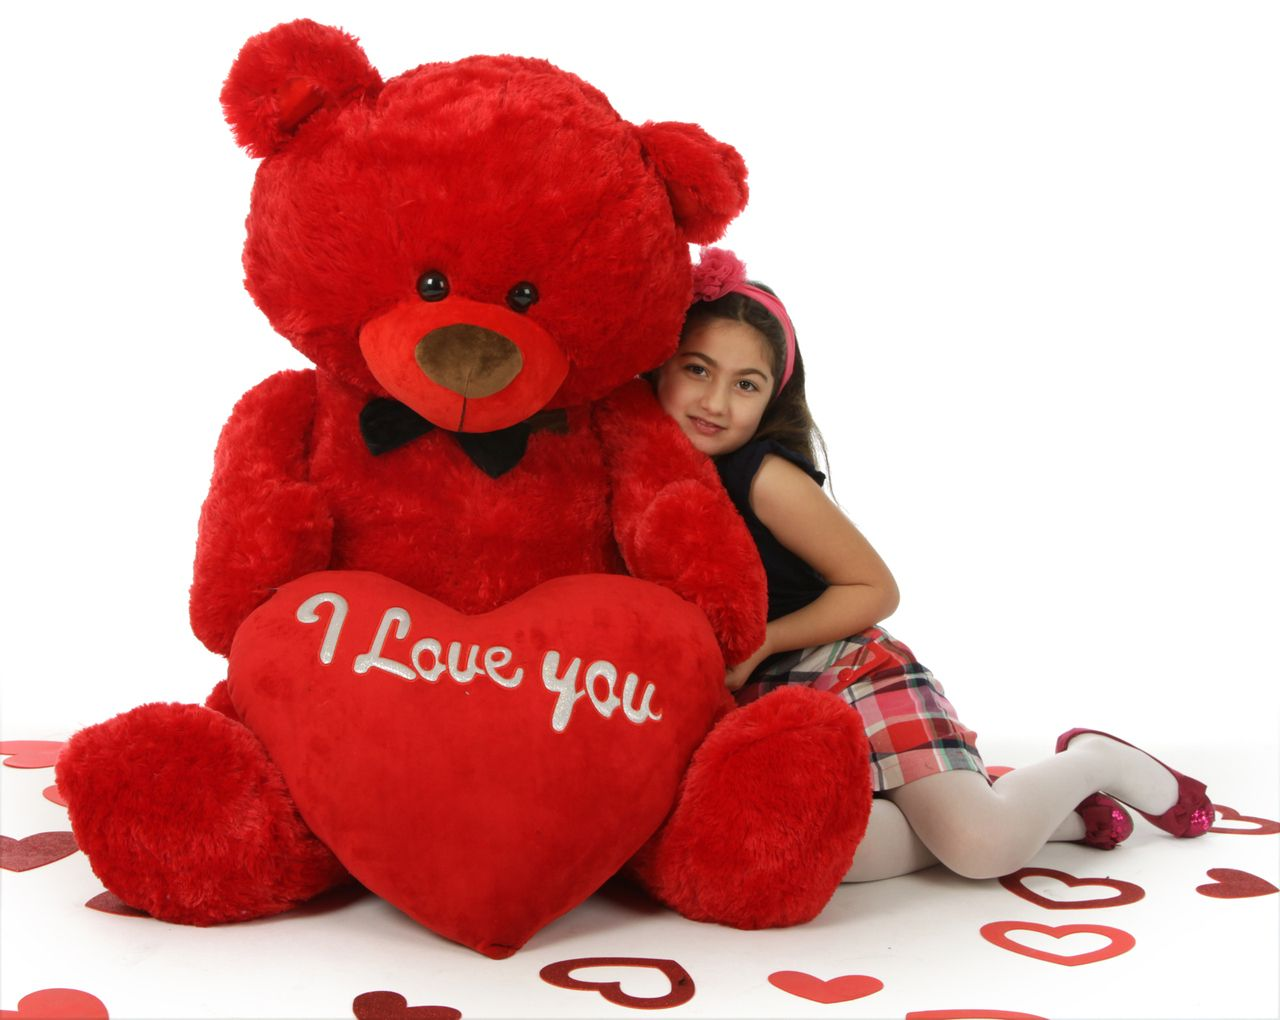 giant teddy huge red valentines day teddy bear with i love you heart - Giant Teddy Bear For Valentines Day